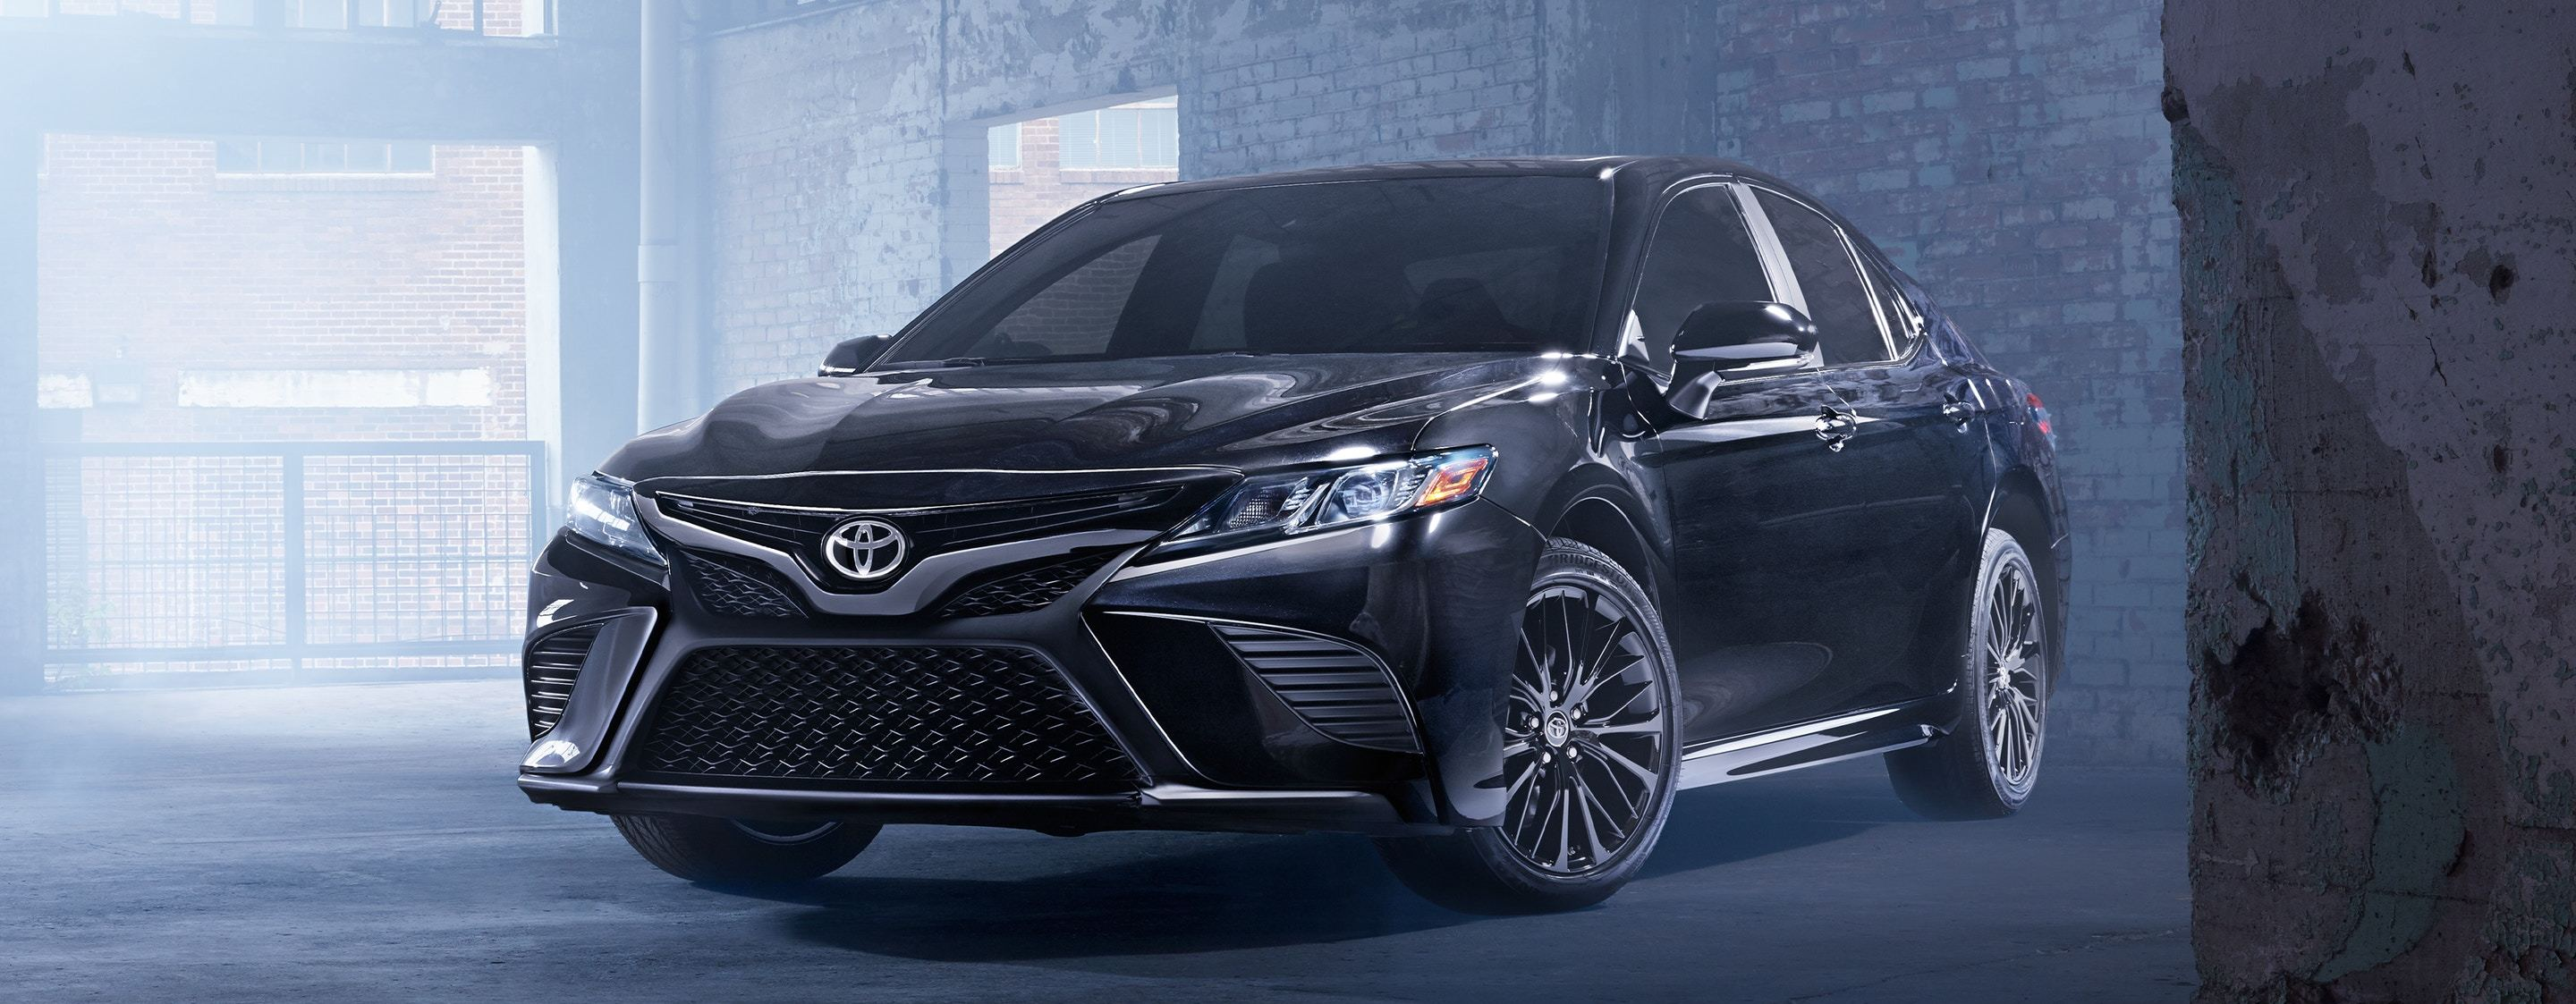 2020 Toyota Camry for Sale near Independence, MO, 64055